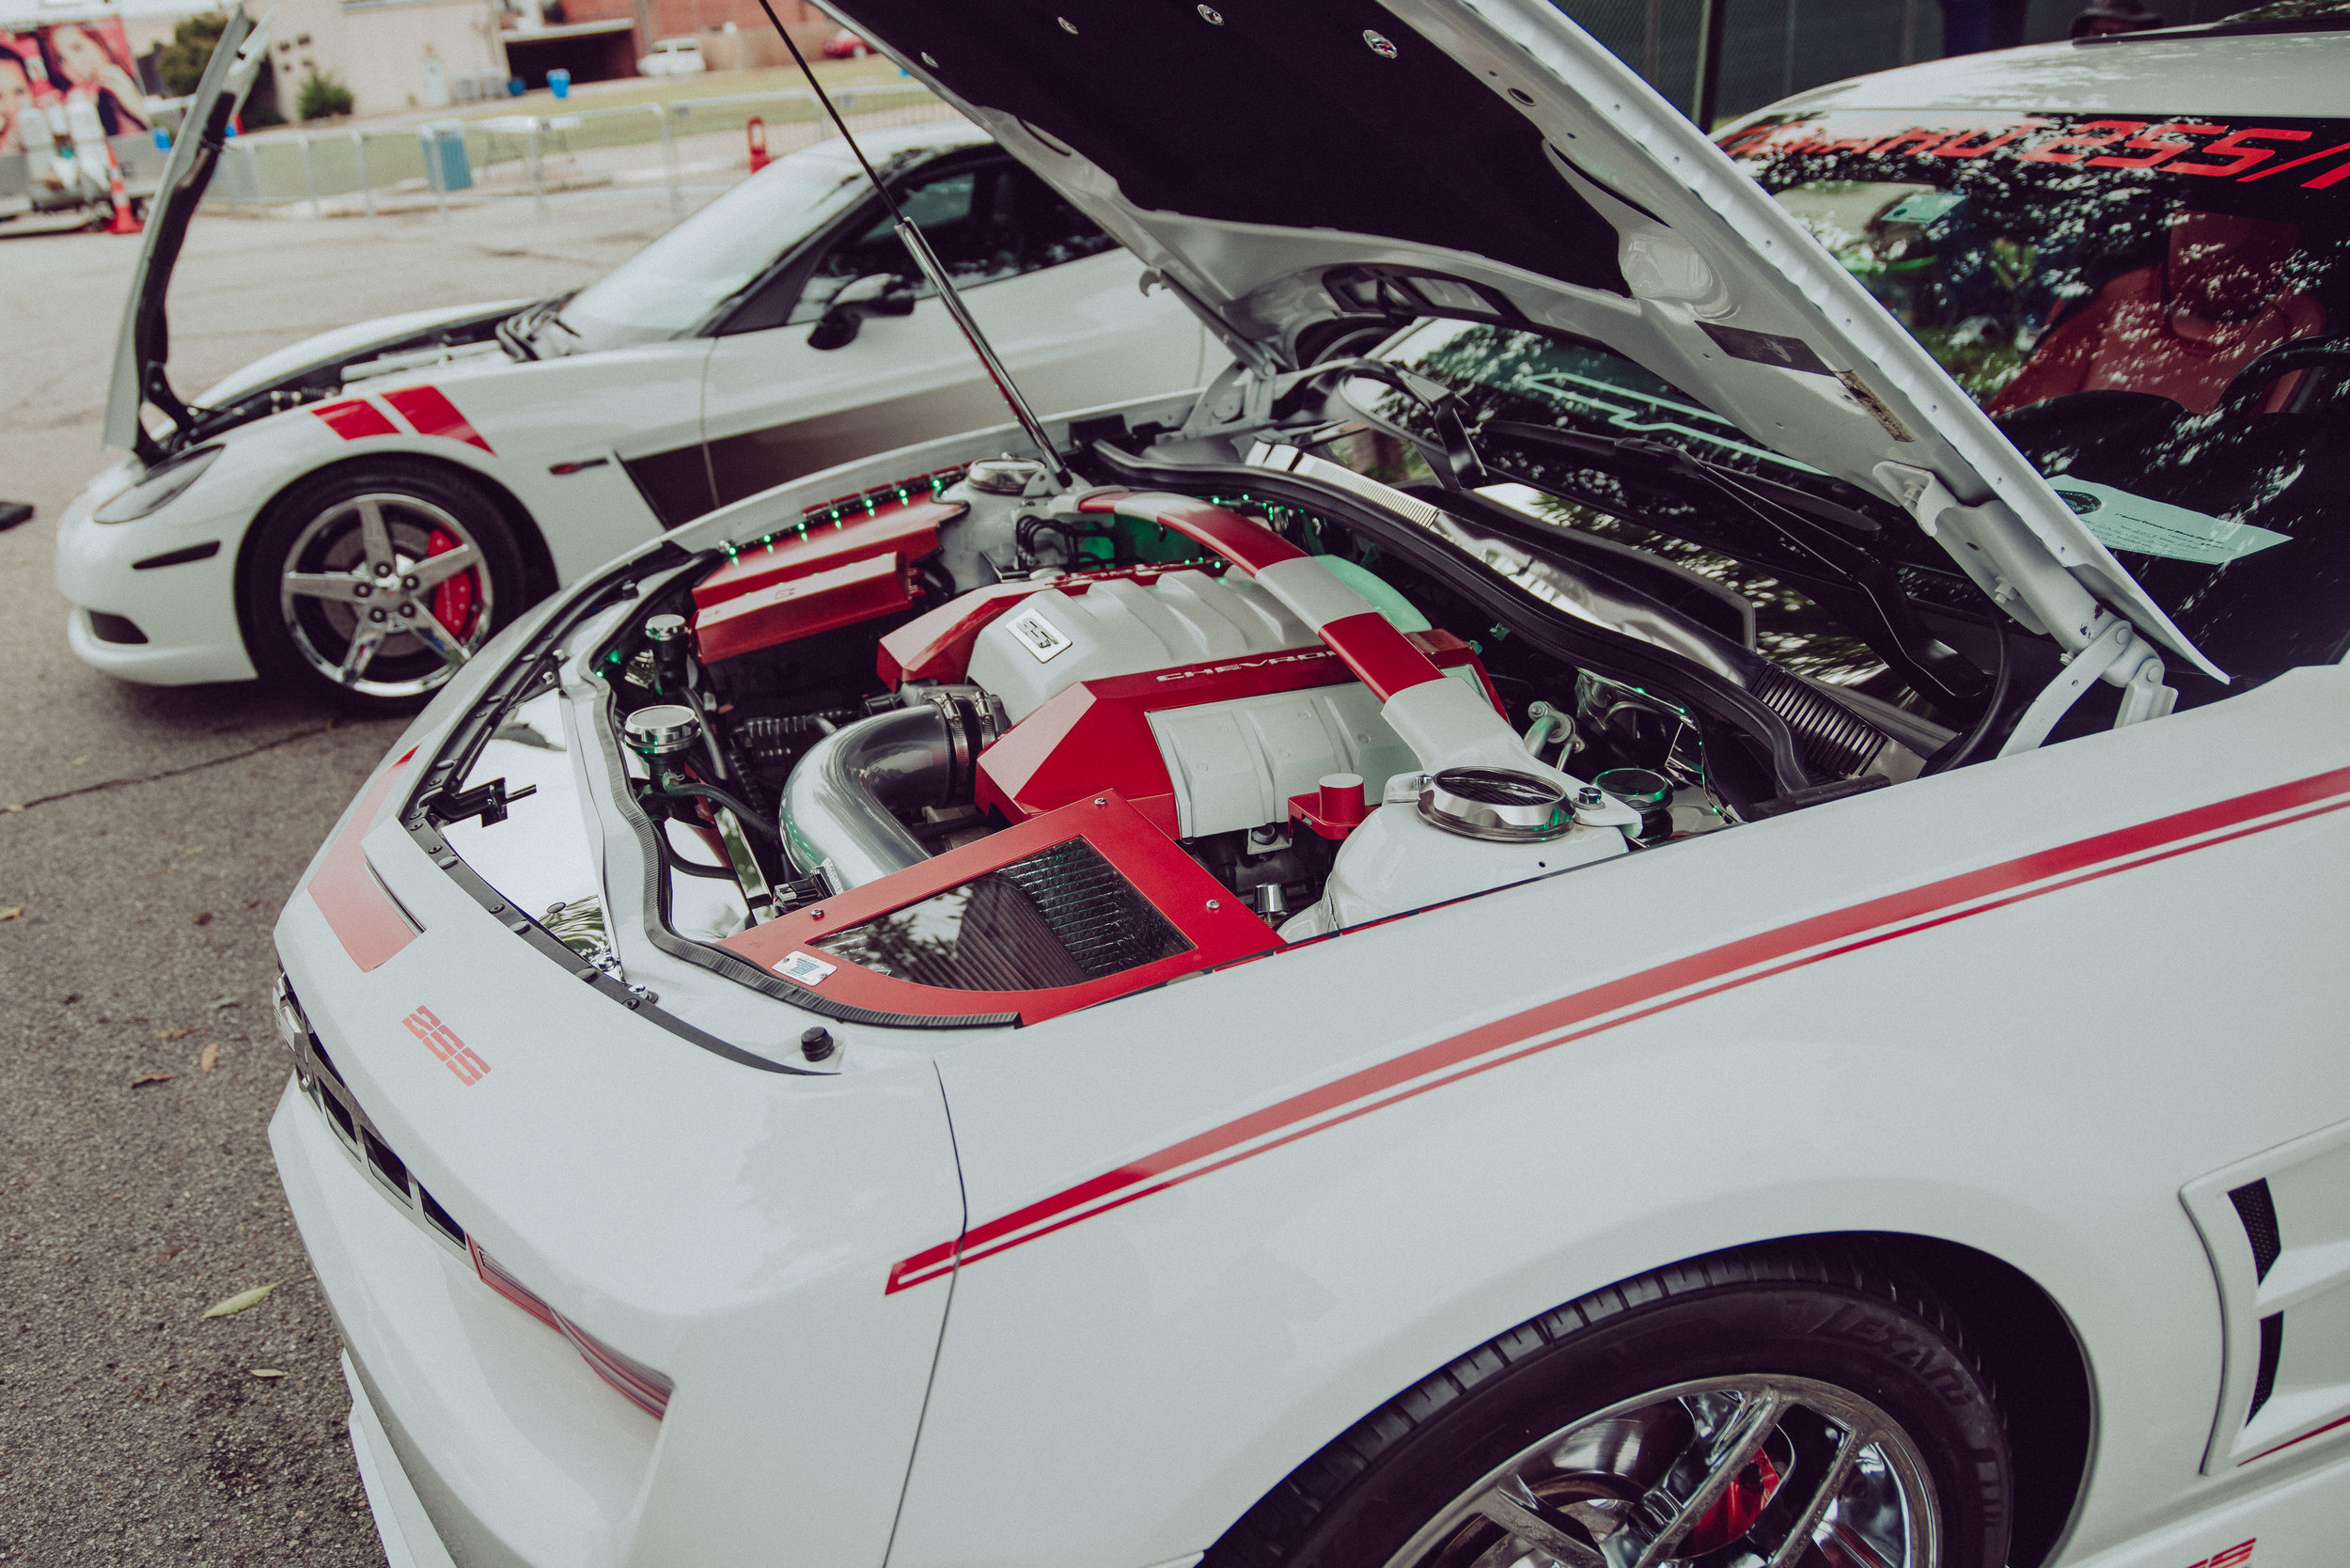 car show under the hood souped up close ups.jpg